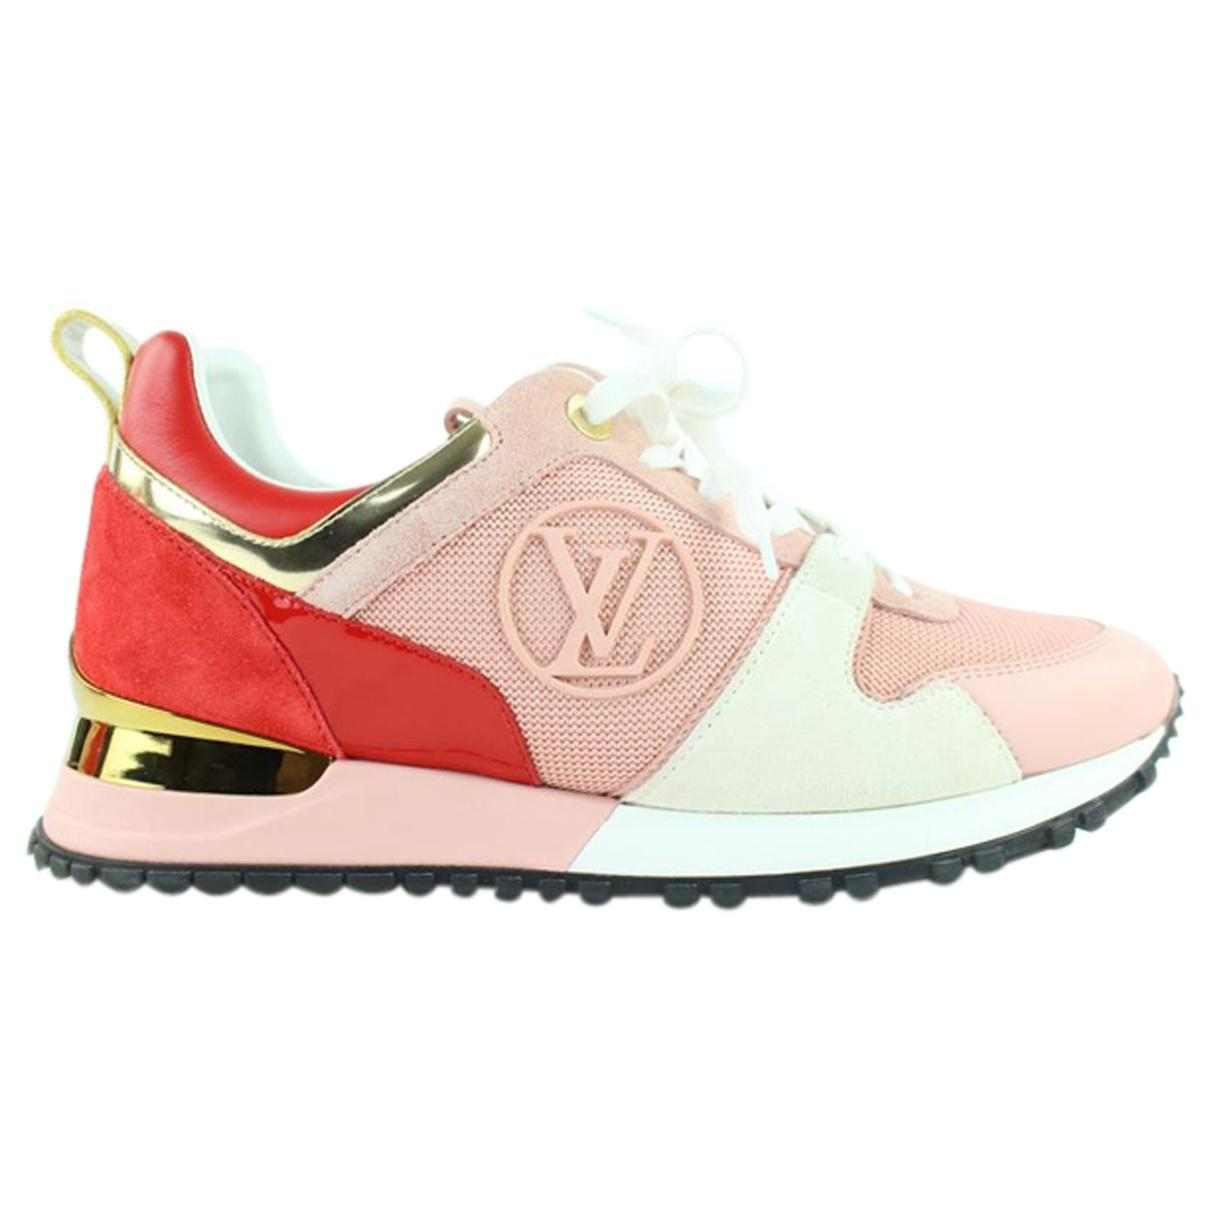 0dead347f0ab Louis Vuitton Run Away Leather Trainers in Pink - Lyst